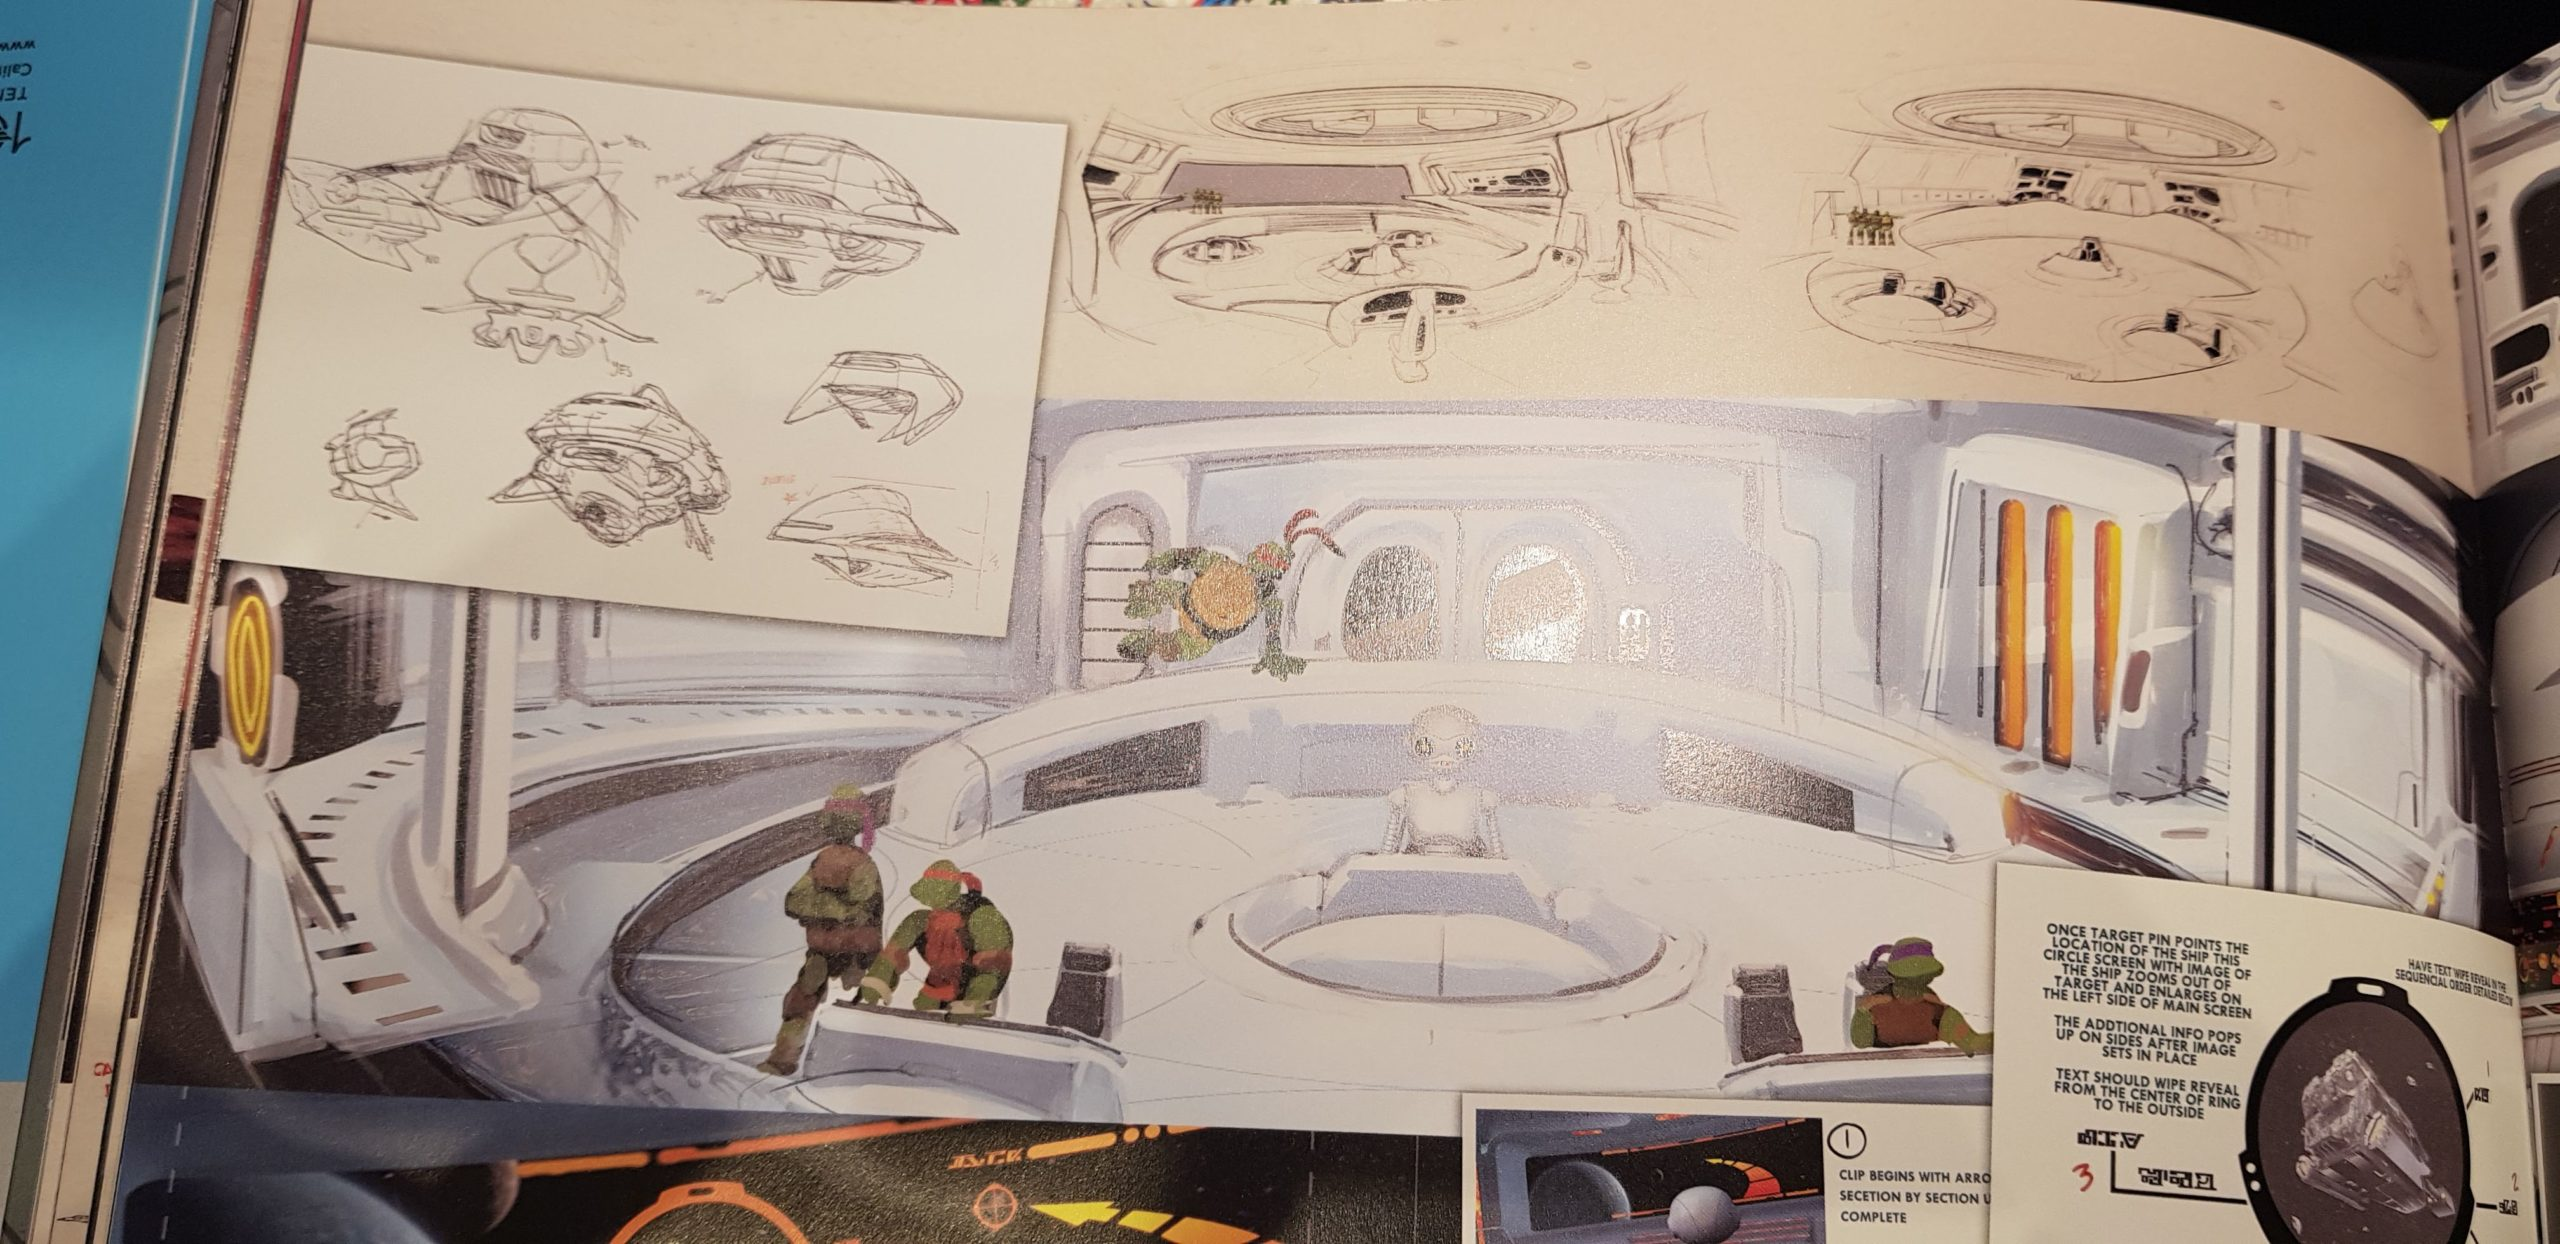 The art of ninja turtle sketch environment book inspiration for industrial product design sketching